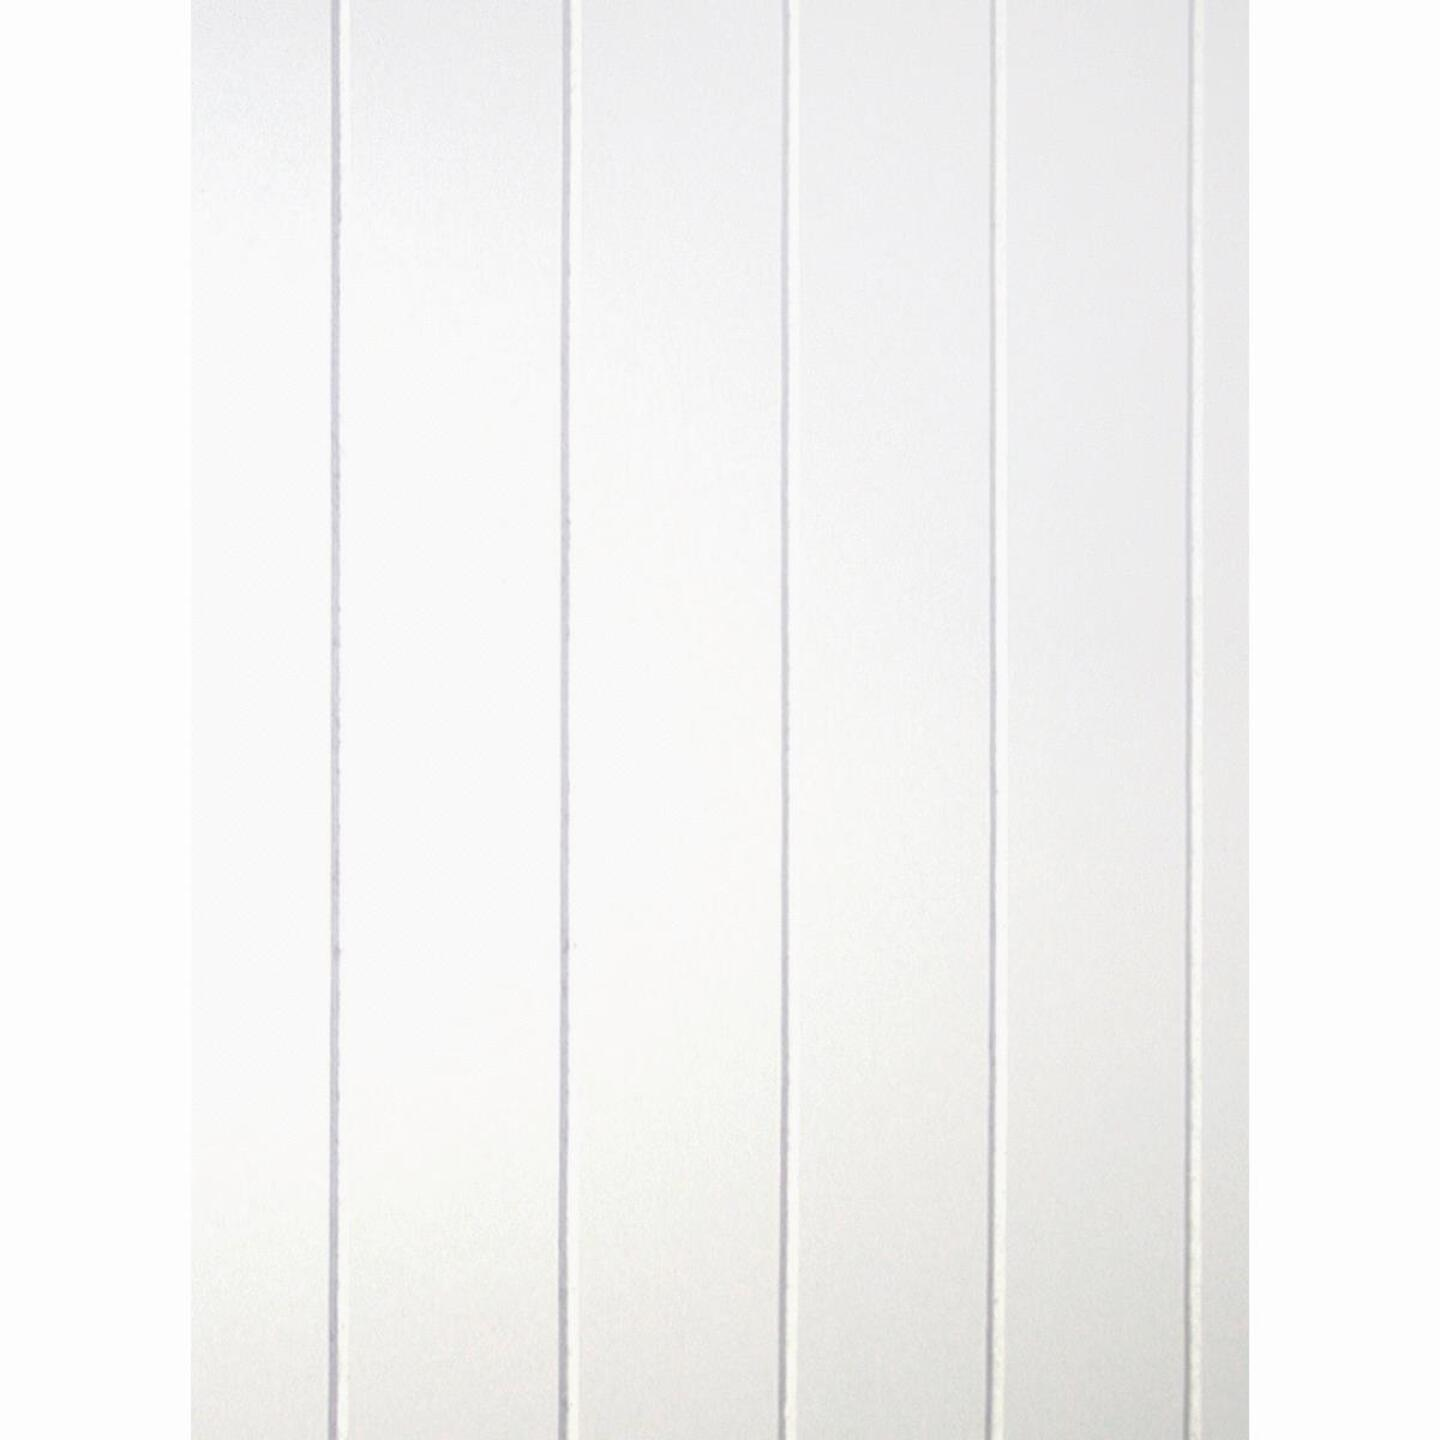 DPI 4 Ft. x 8 Ft. x 3/16 In. White Dover V-Groove Wall Paneling Image 2